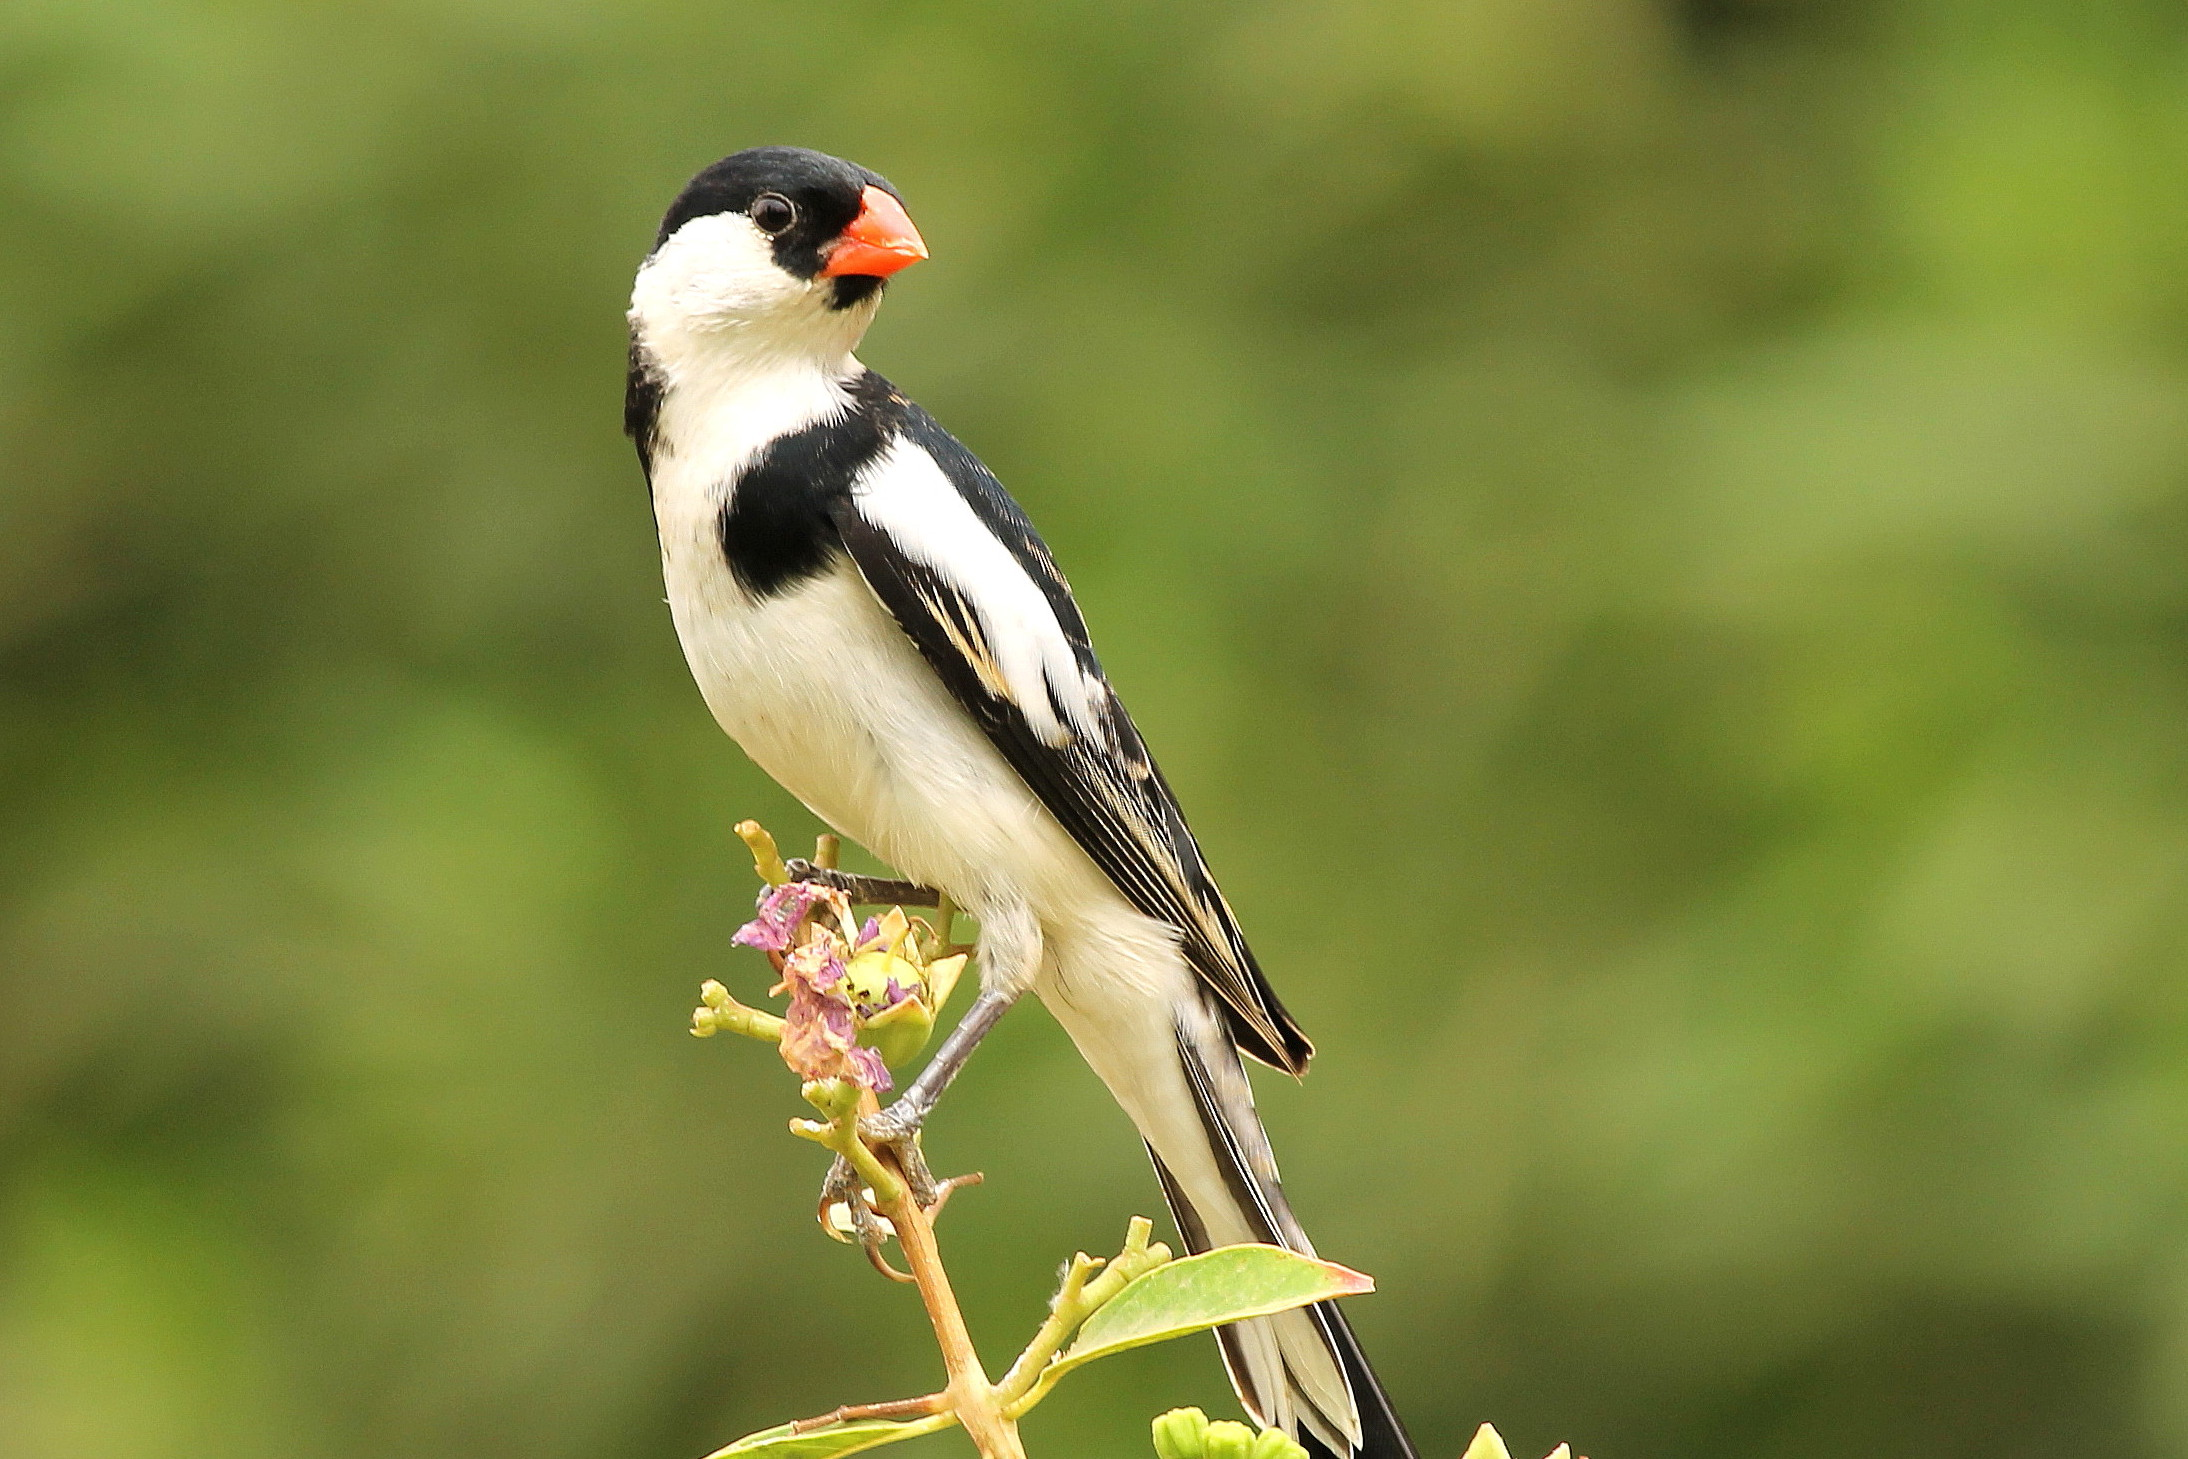 pin-tailed-whydah1